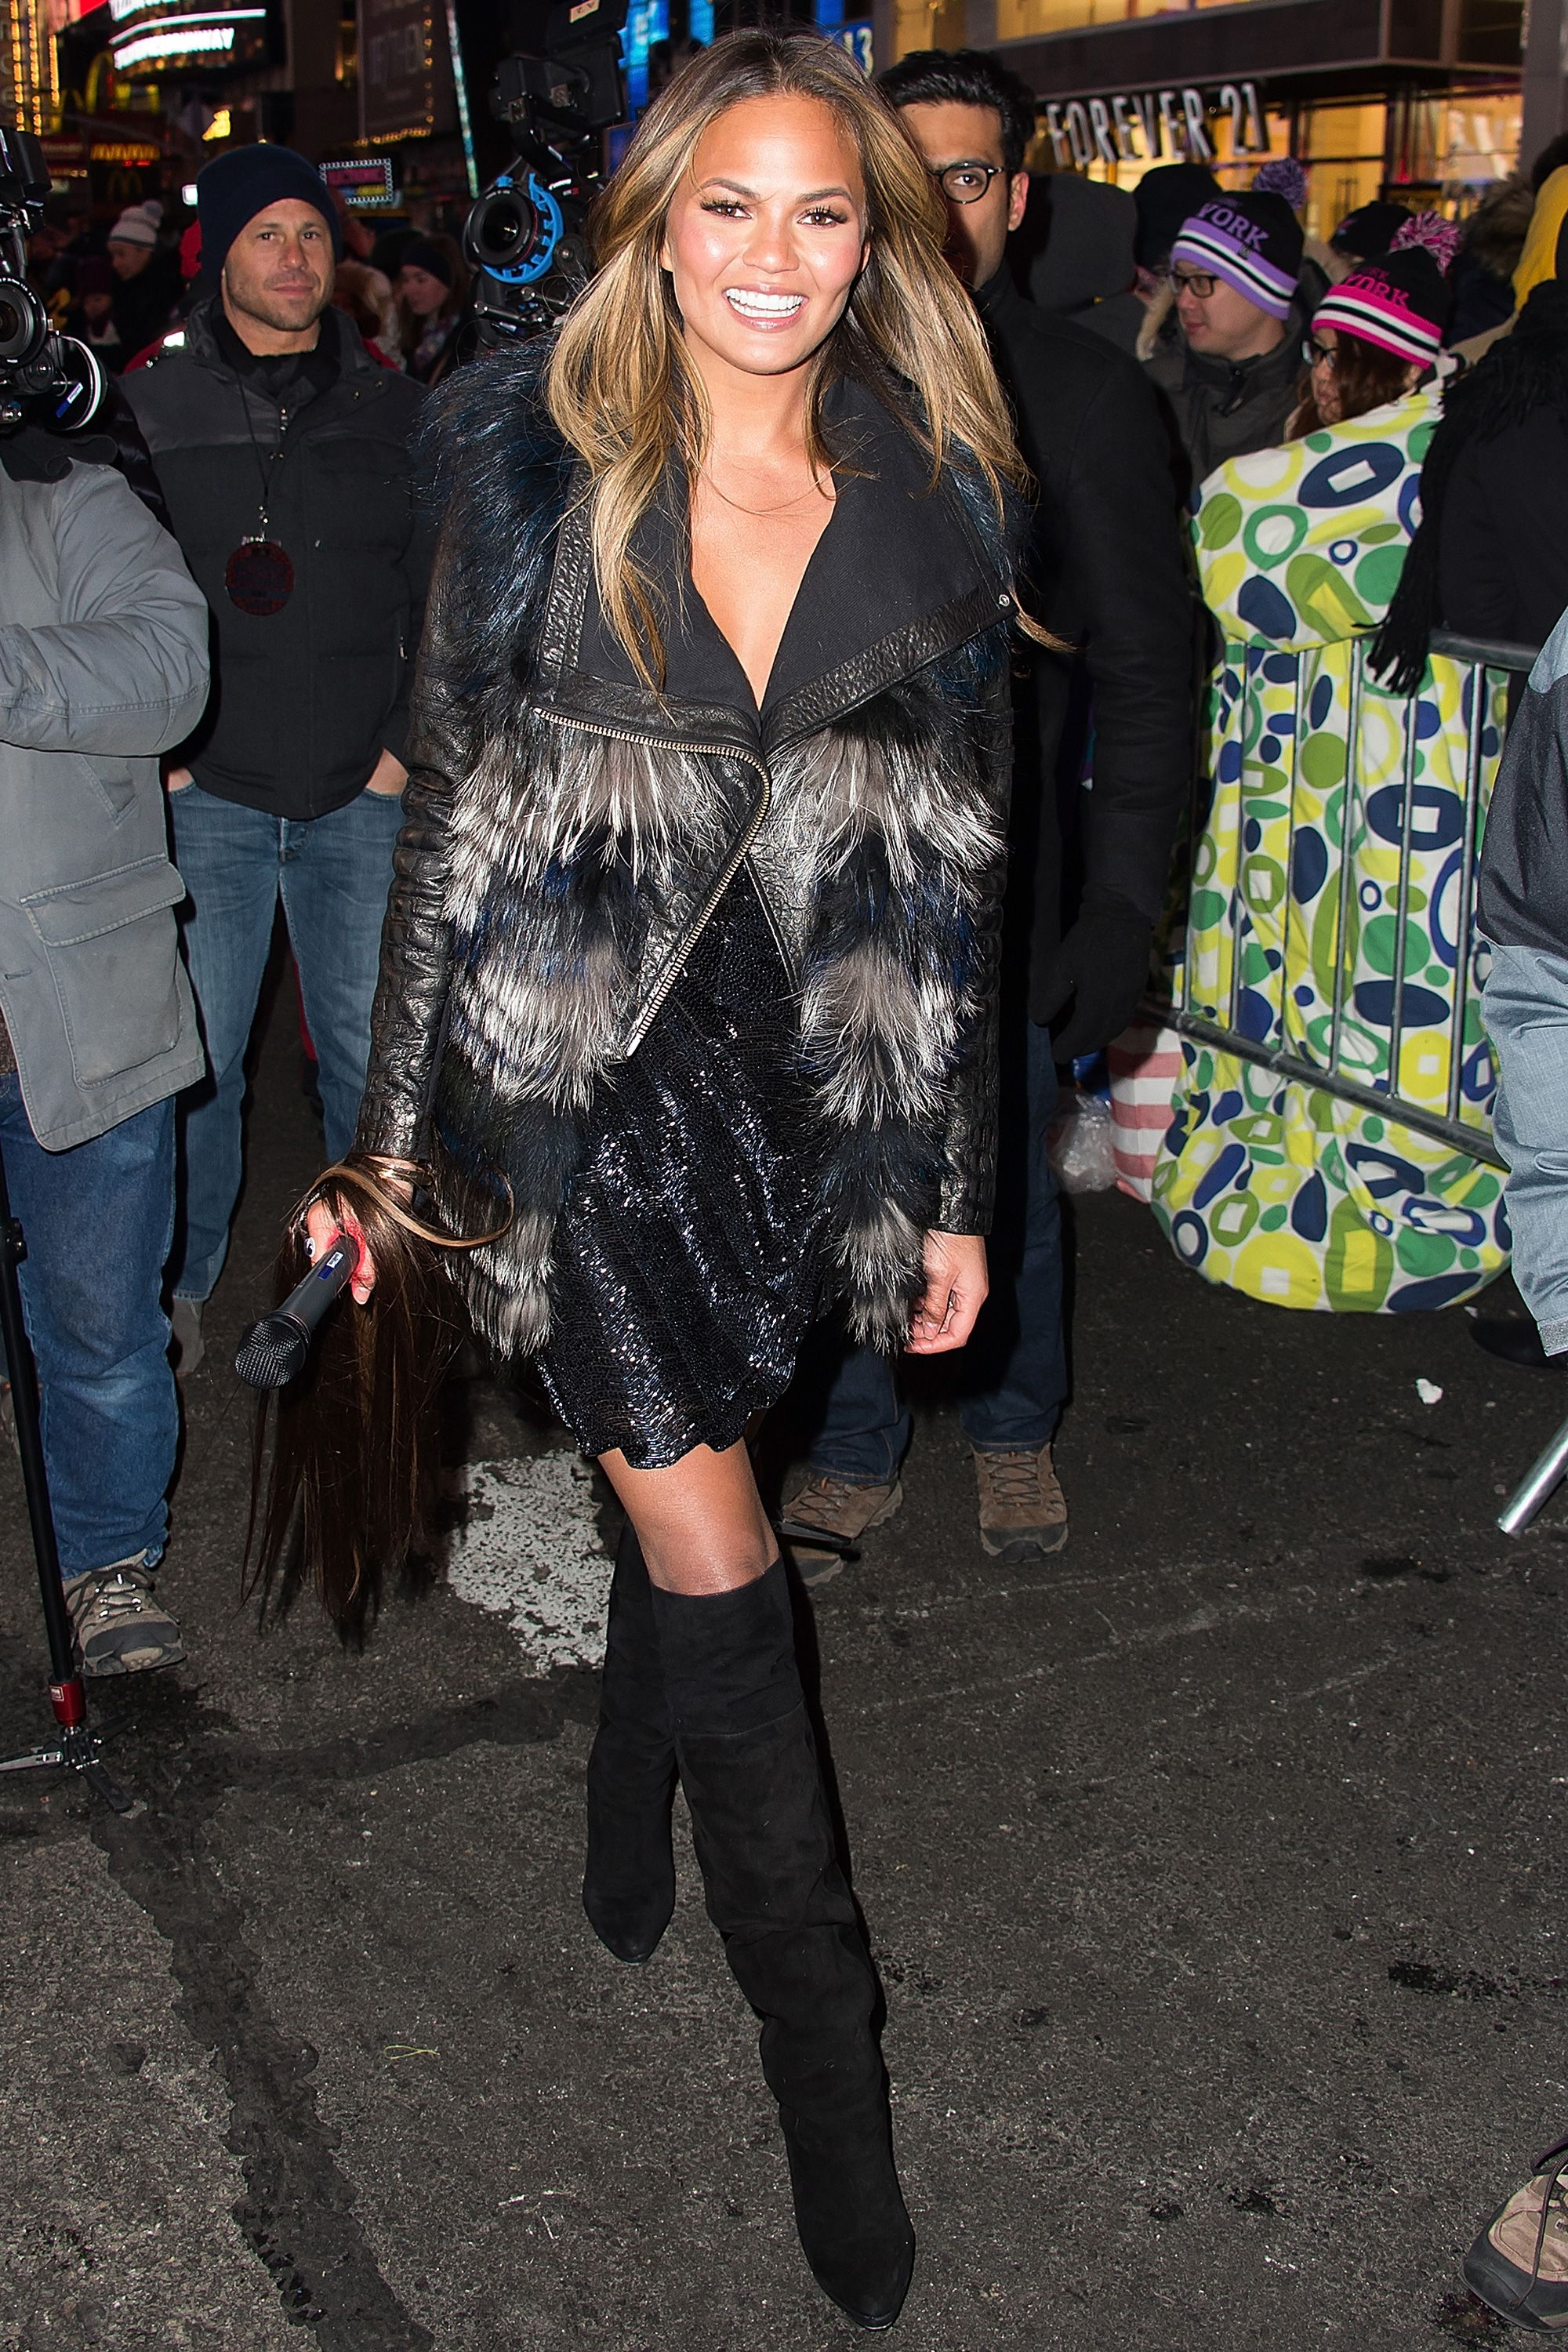 Chrissy Teigen attends New Year's Eve 2015 in Times Square on Dec. 31, 2014.